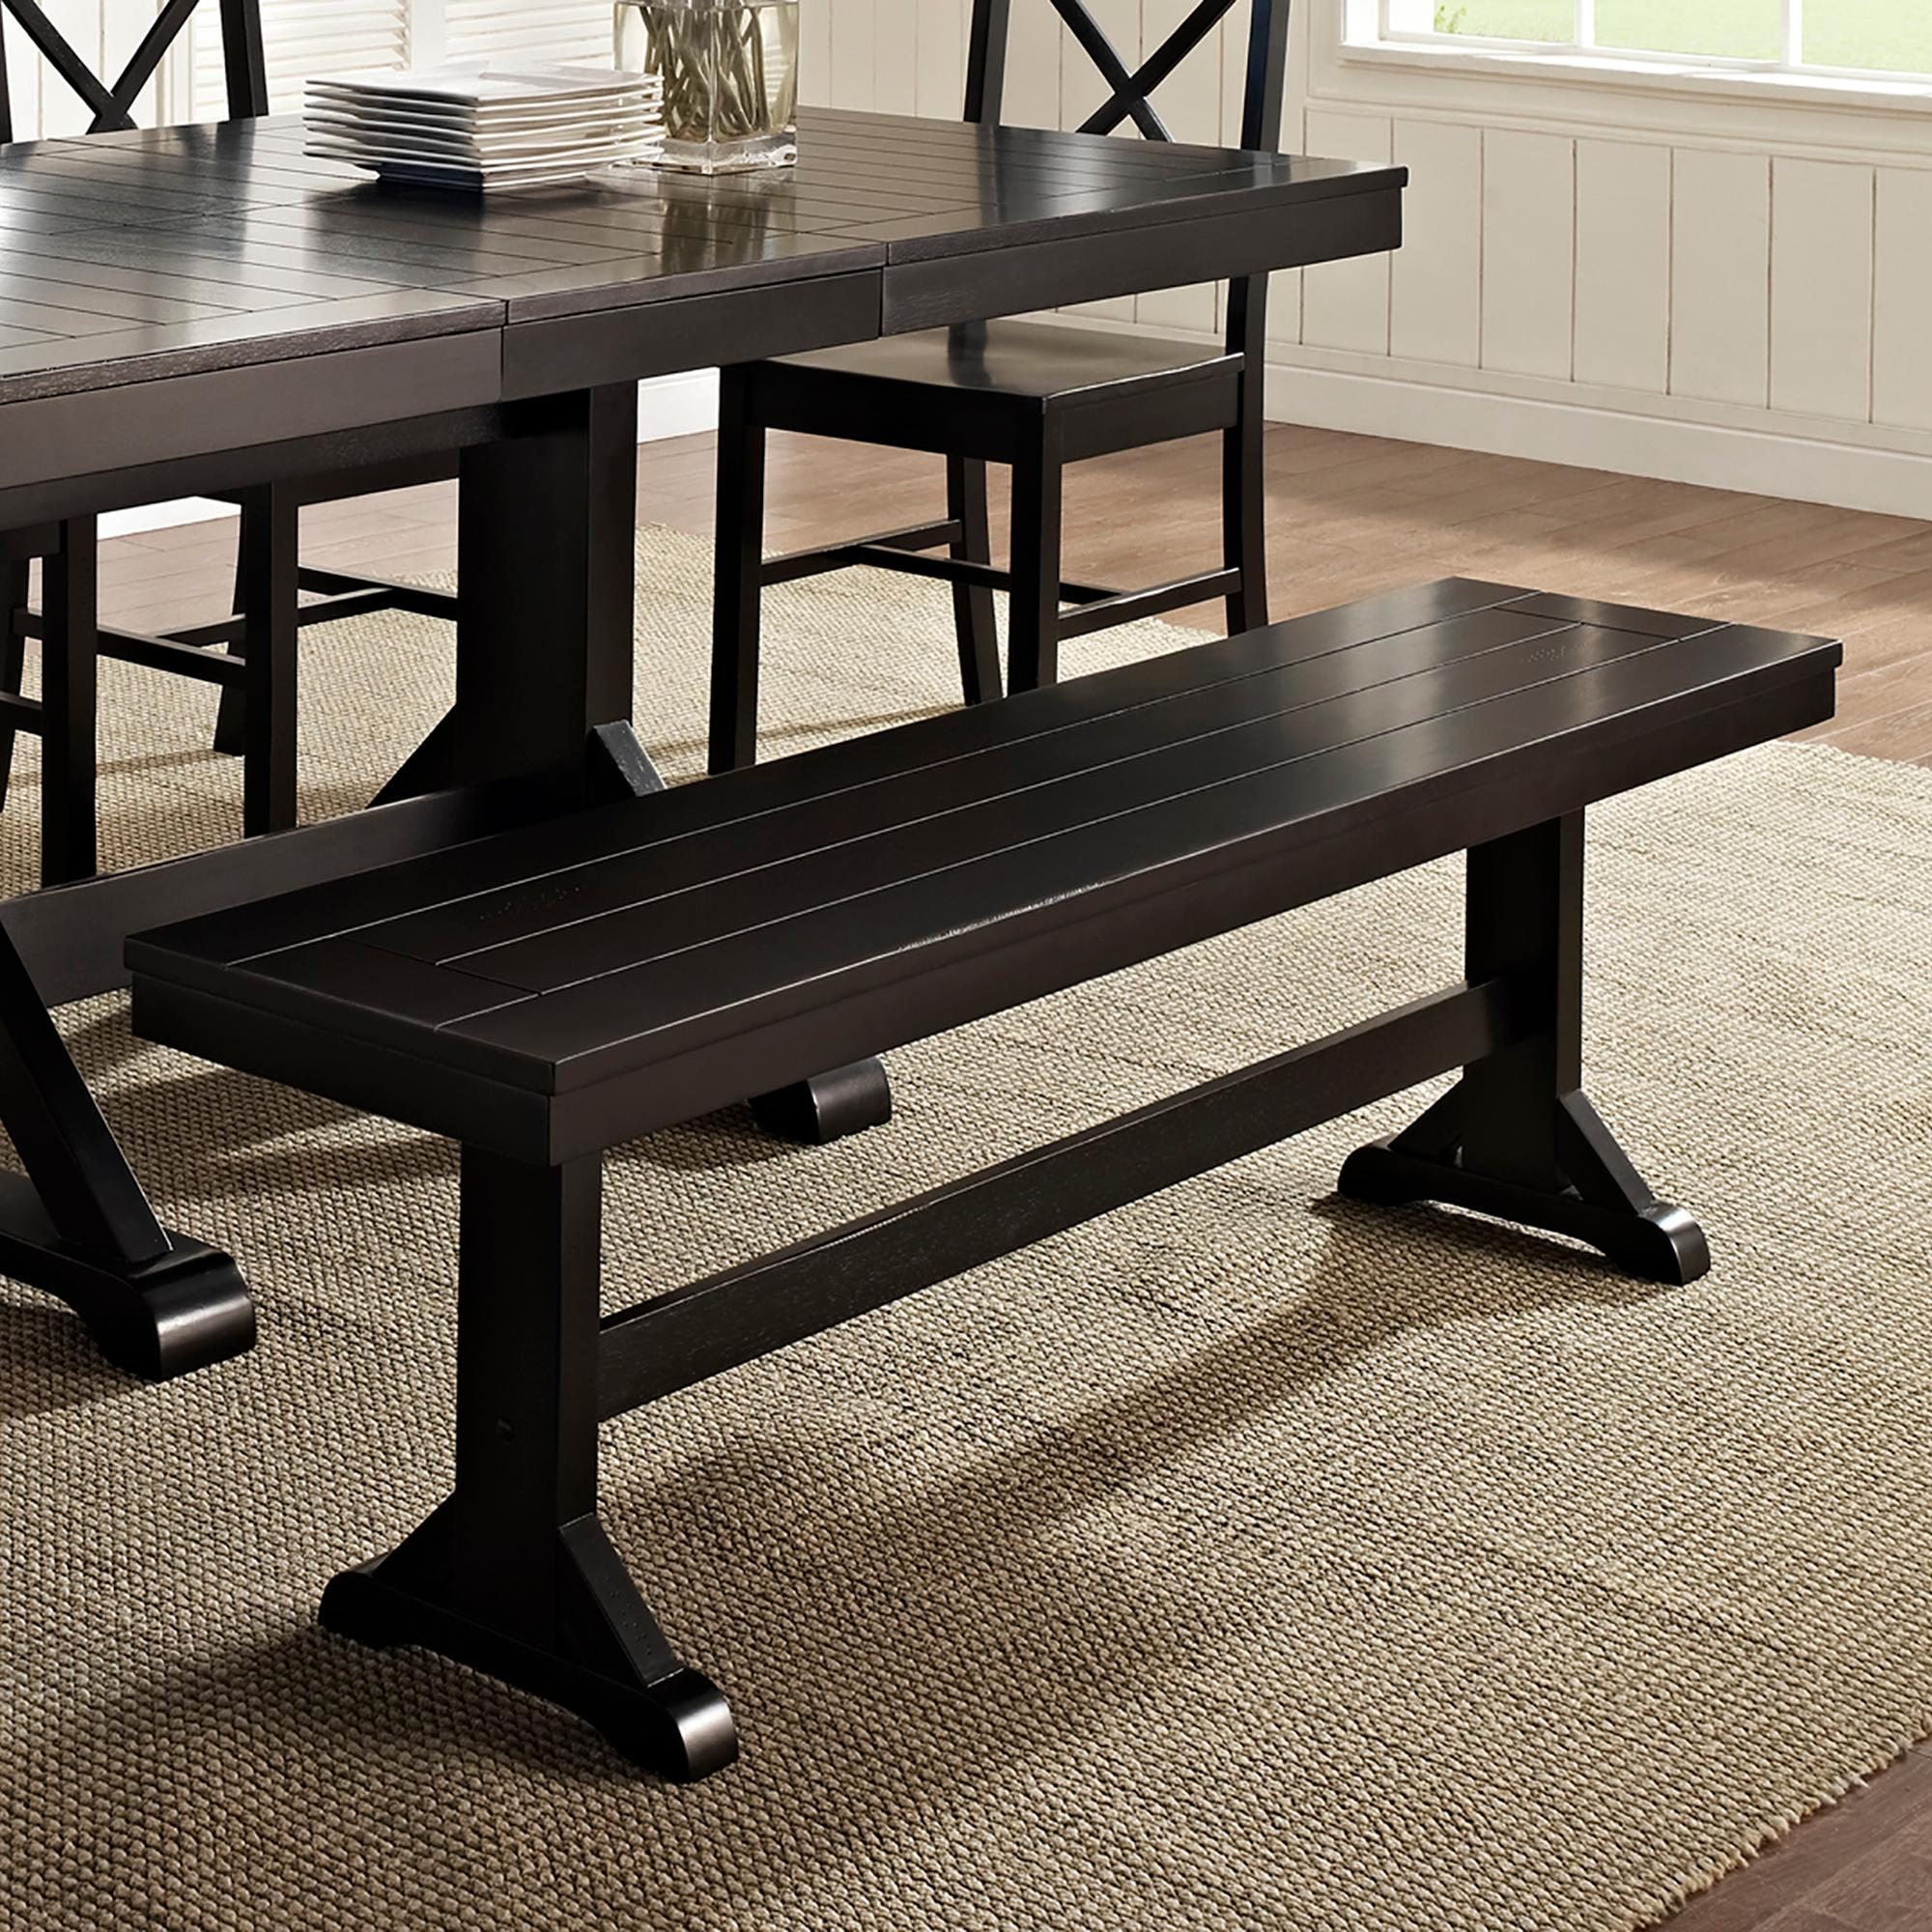 Dining Room Furniture With Bench: WE Furniture Solid Wood Black Dining Bench